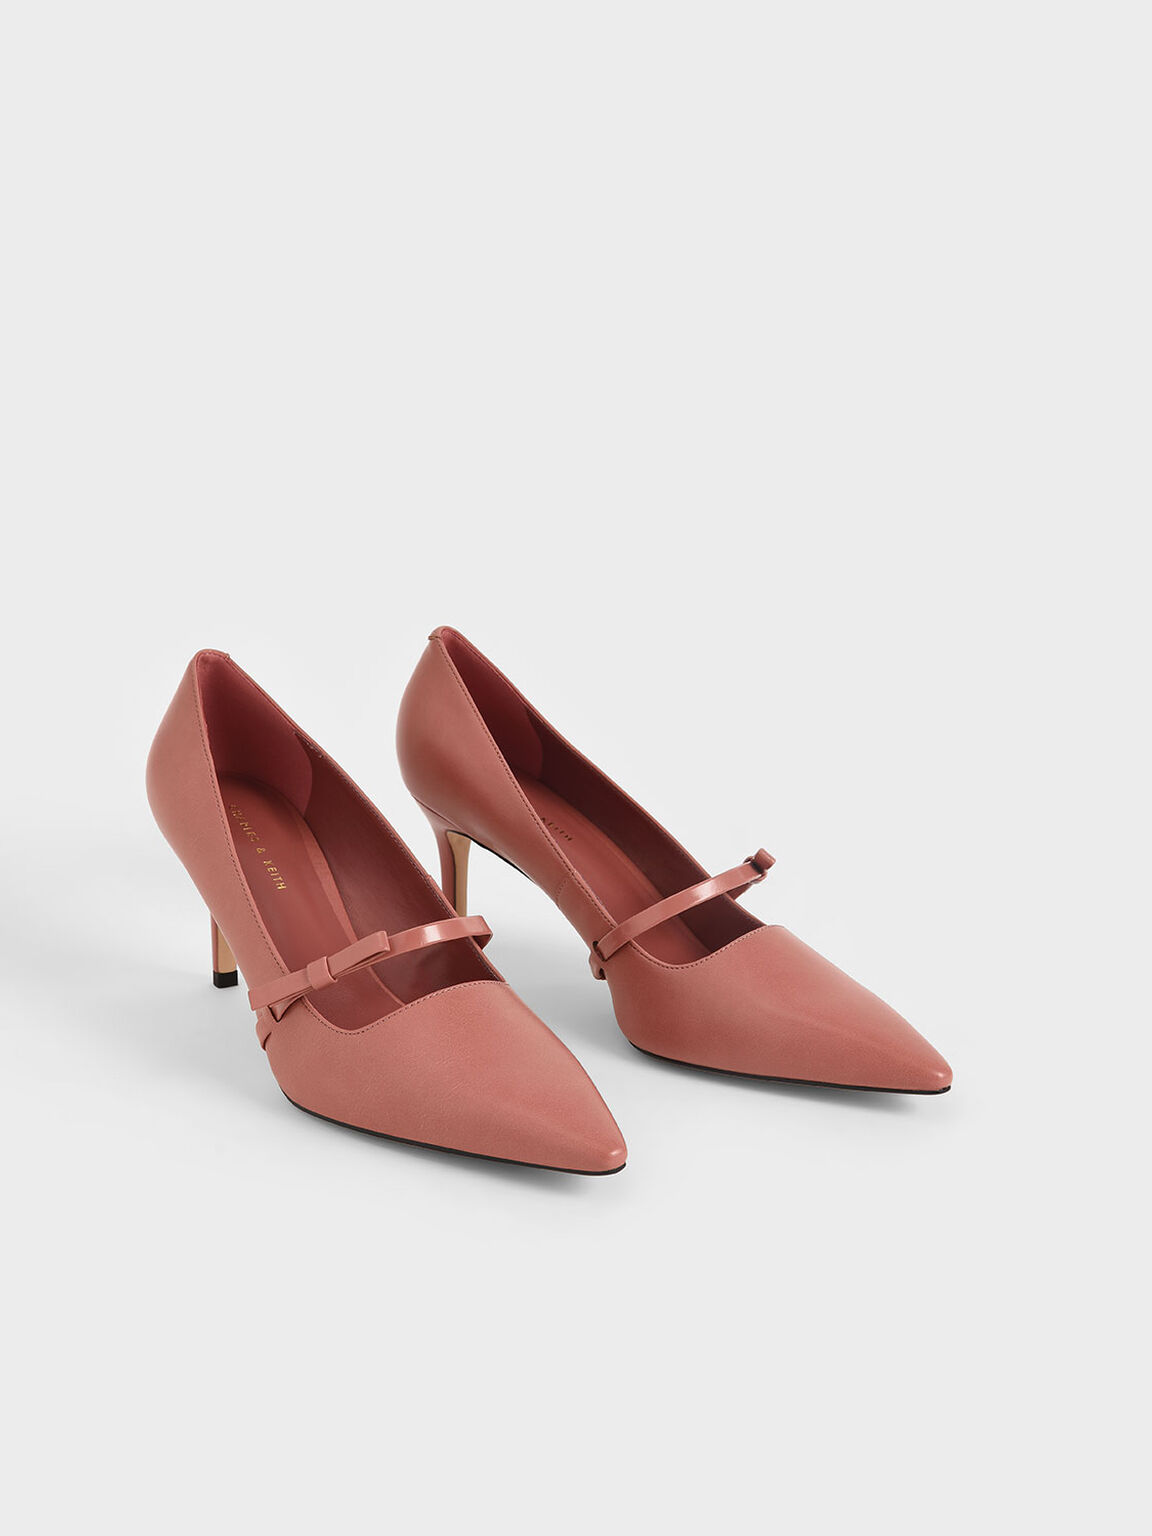 Mary Jane Stiletto Heel Pumps, Pink, hi-res